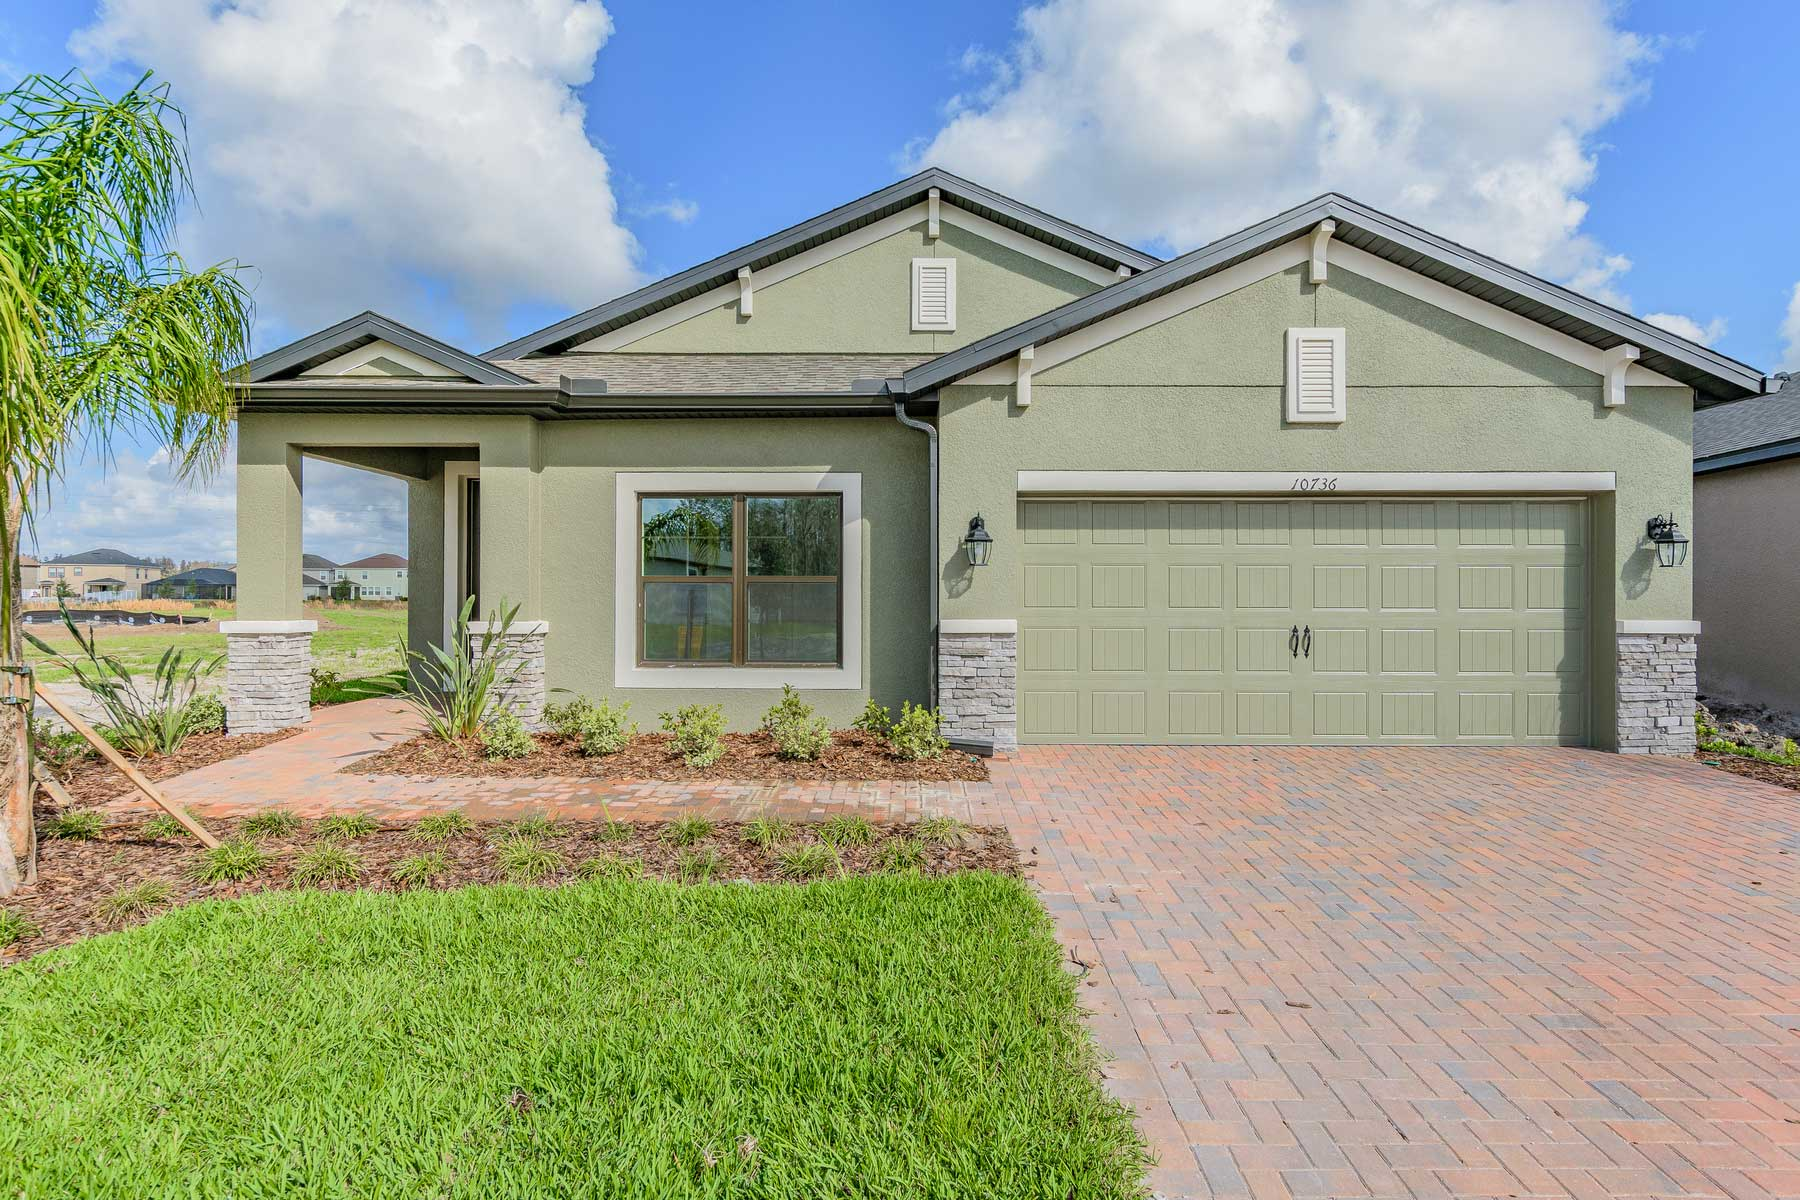 M/I Homes New Home Communities Riverview Florida